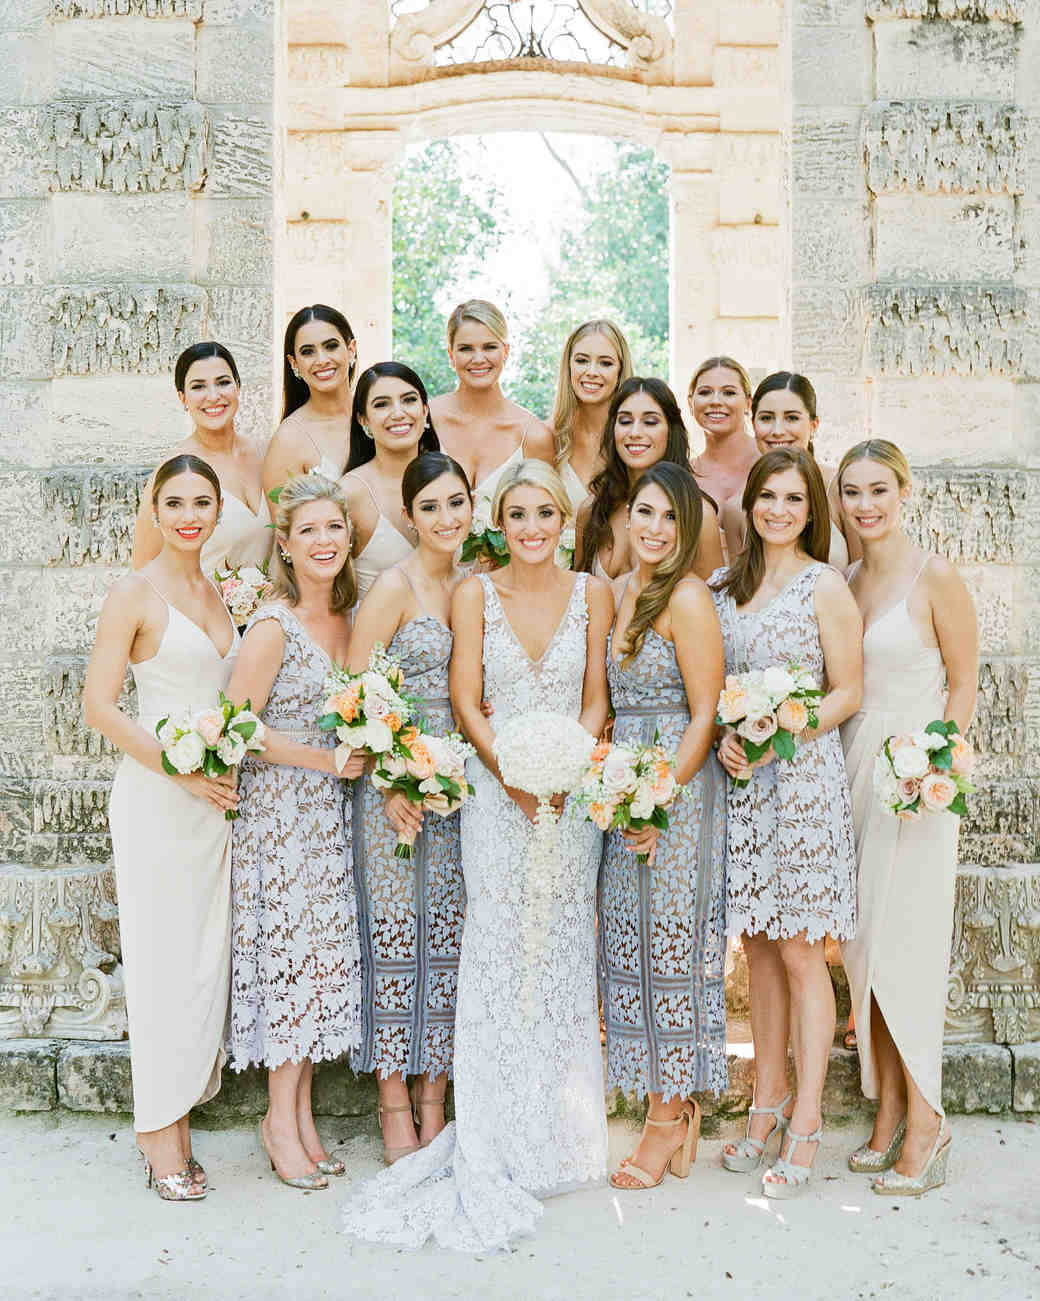 natalie jamey wedding bridesmaids